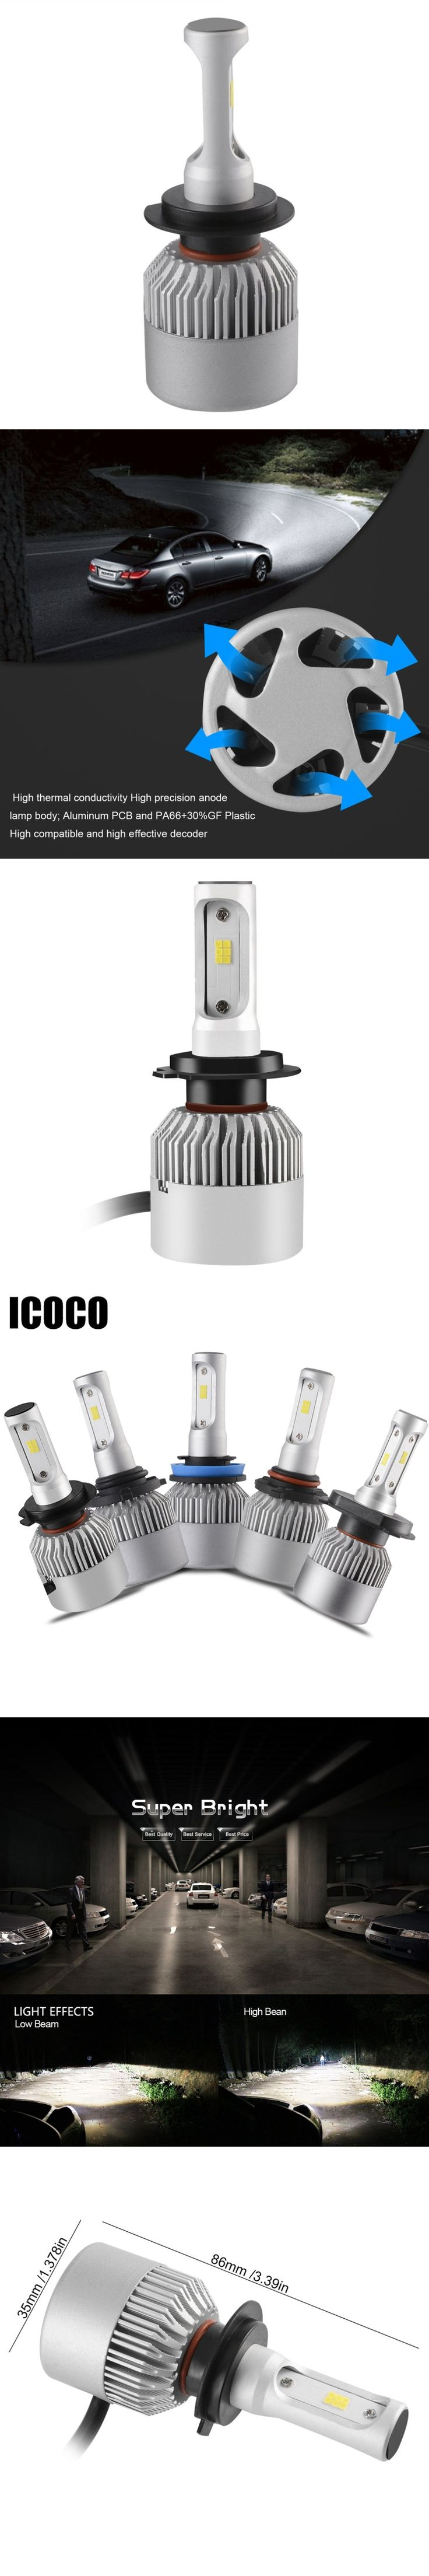 2Pcs H4 LED 12V H7 H11 H8 9005 9006 Car Headlights 6500K 72W 8000LM High Low Beam Bulb All In One Automobile Lamp H7 LED Bulbs